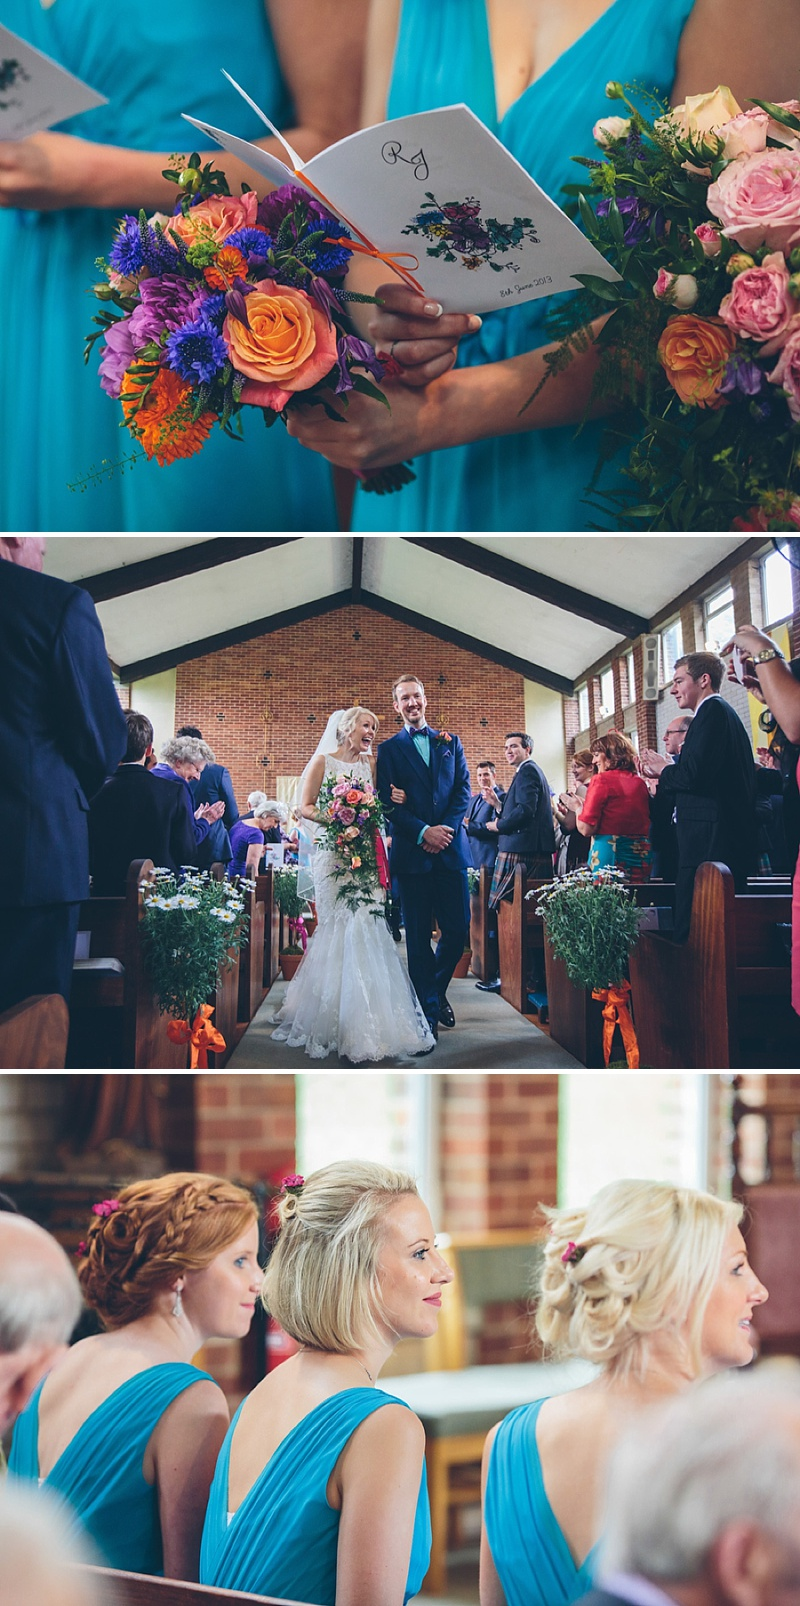 Colourful Rustic Wedding At The Rickety Barn Cambridgeshire Bride In Benjamin Roberts Gown Groom In Navy Cad And The Dandy Suit Images By Richard Skins025